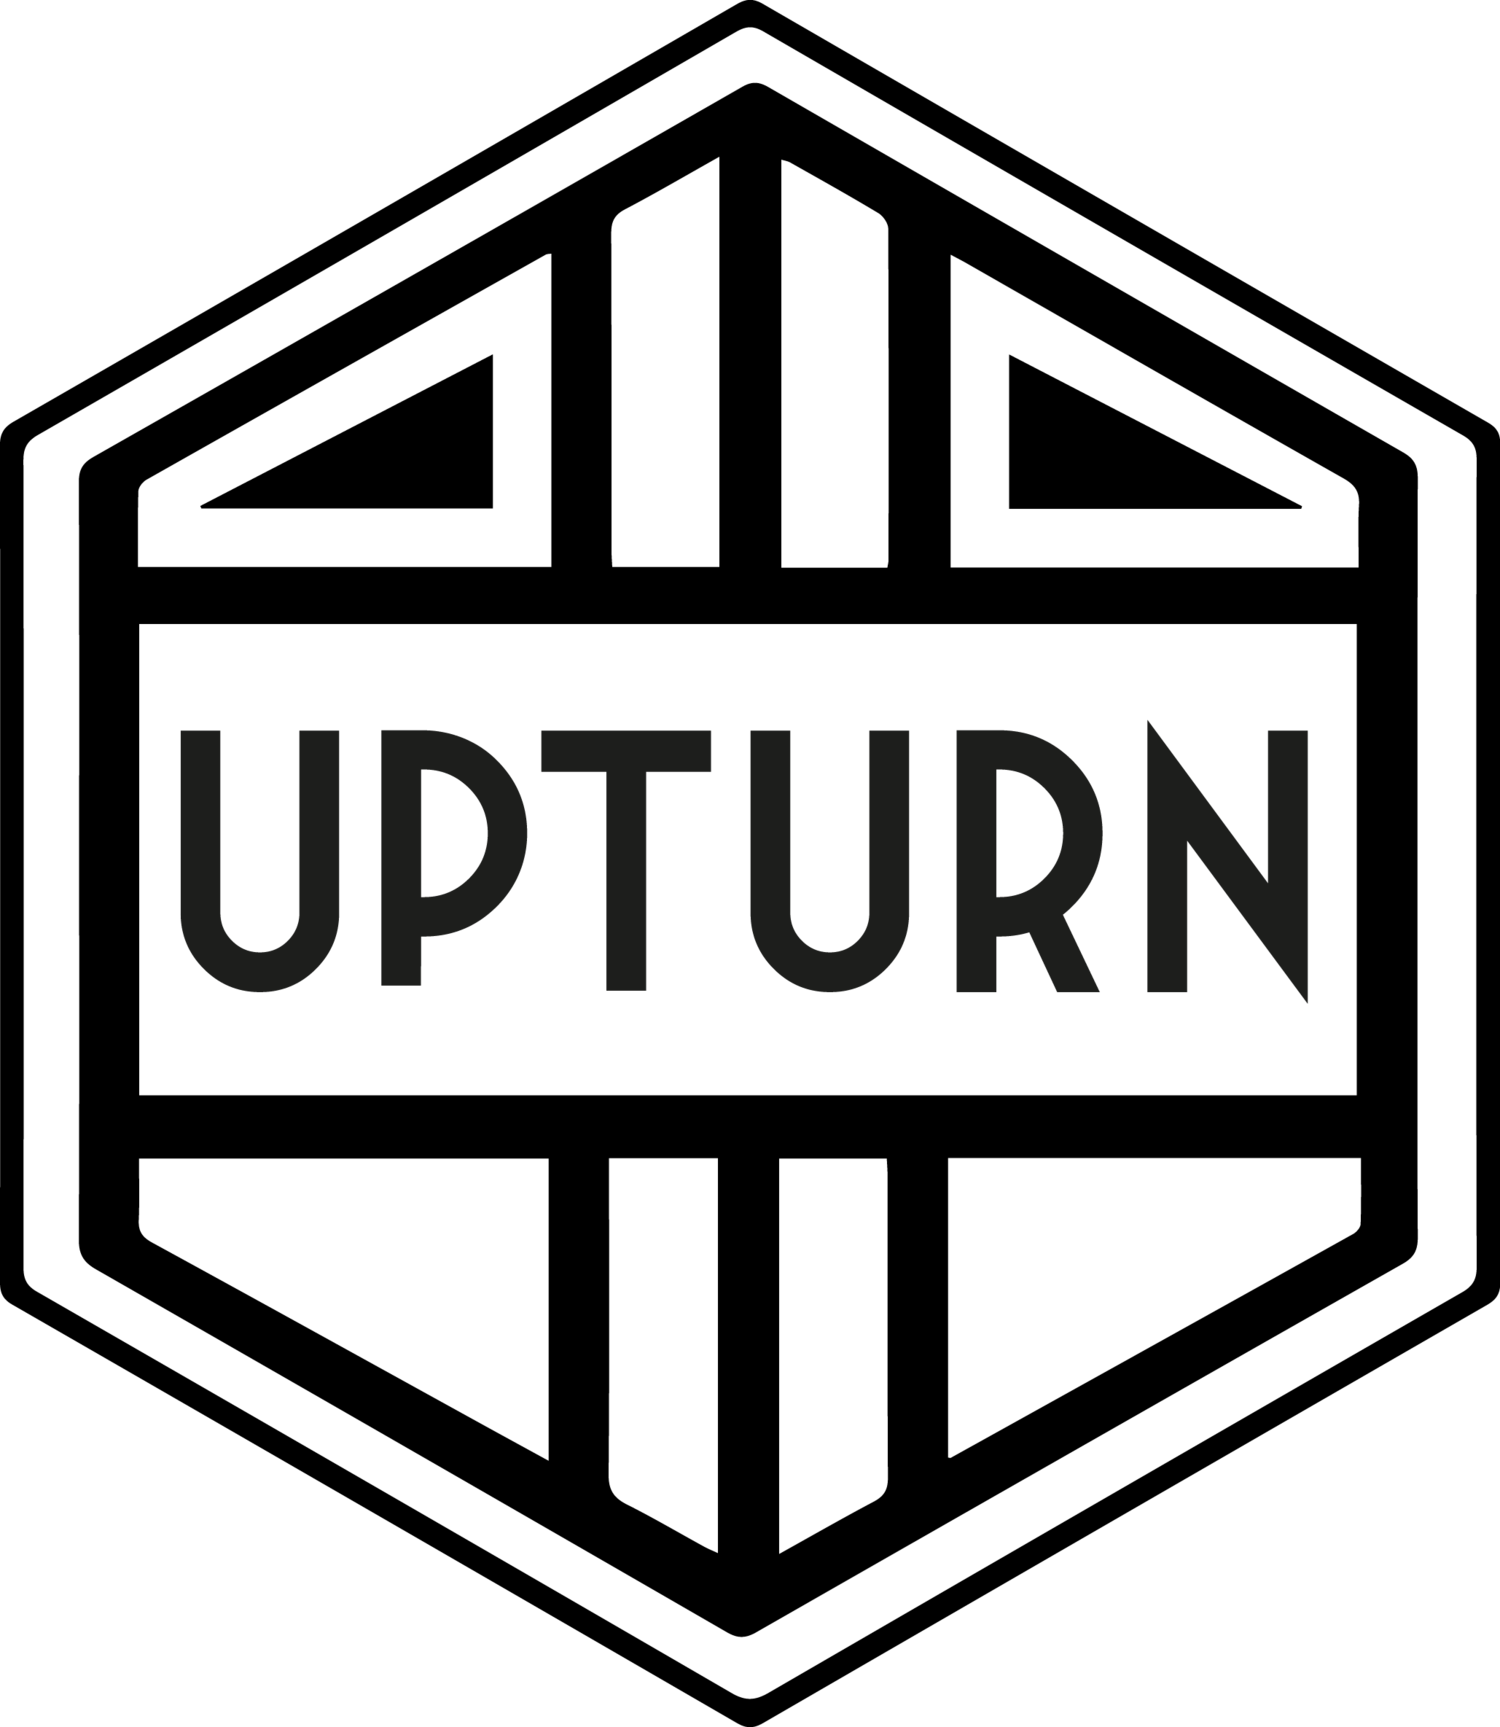 Upturn Publishing